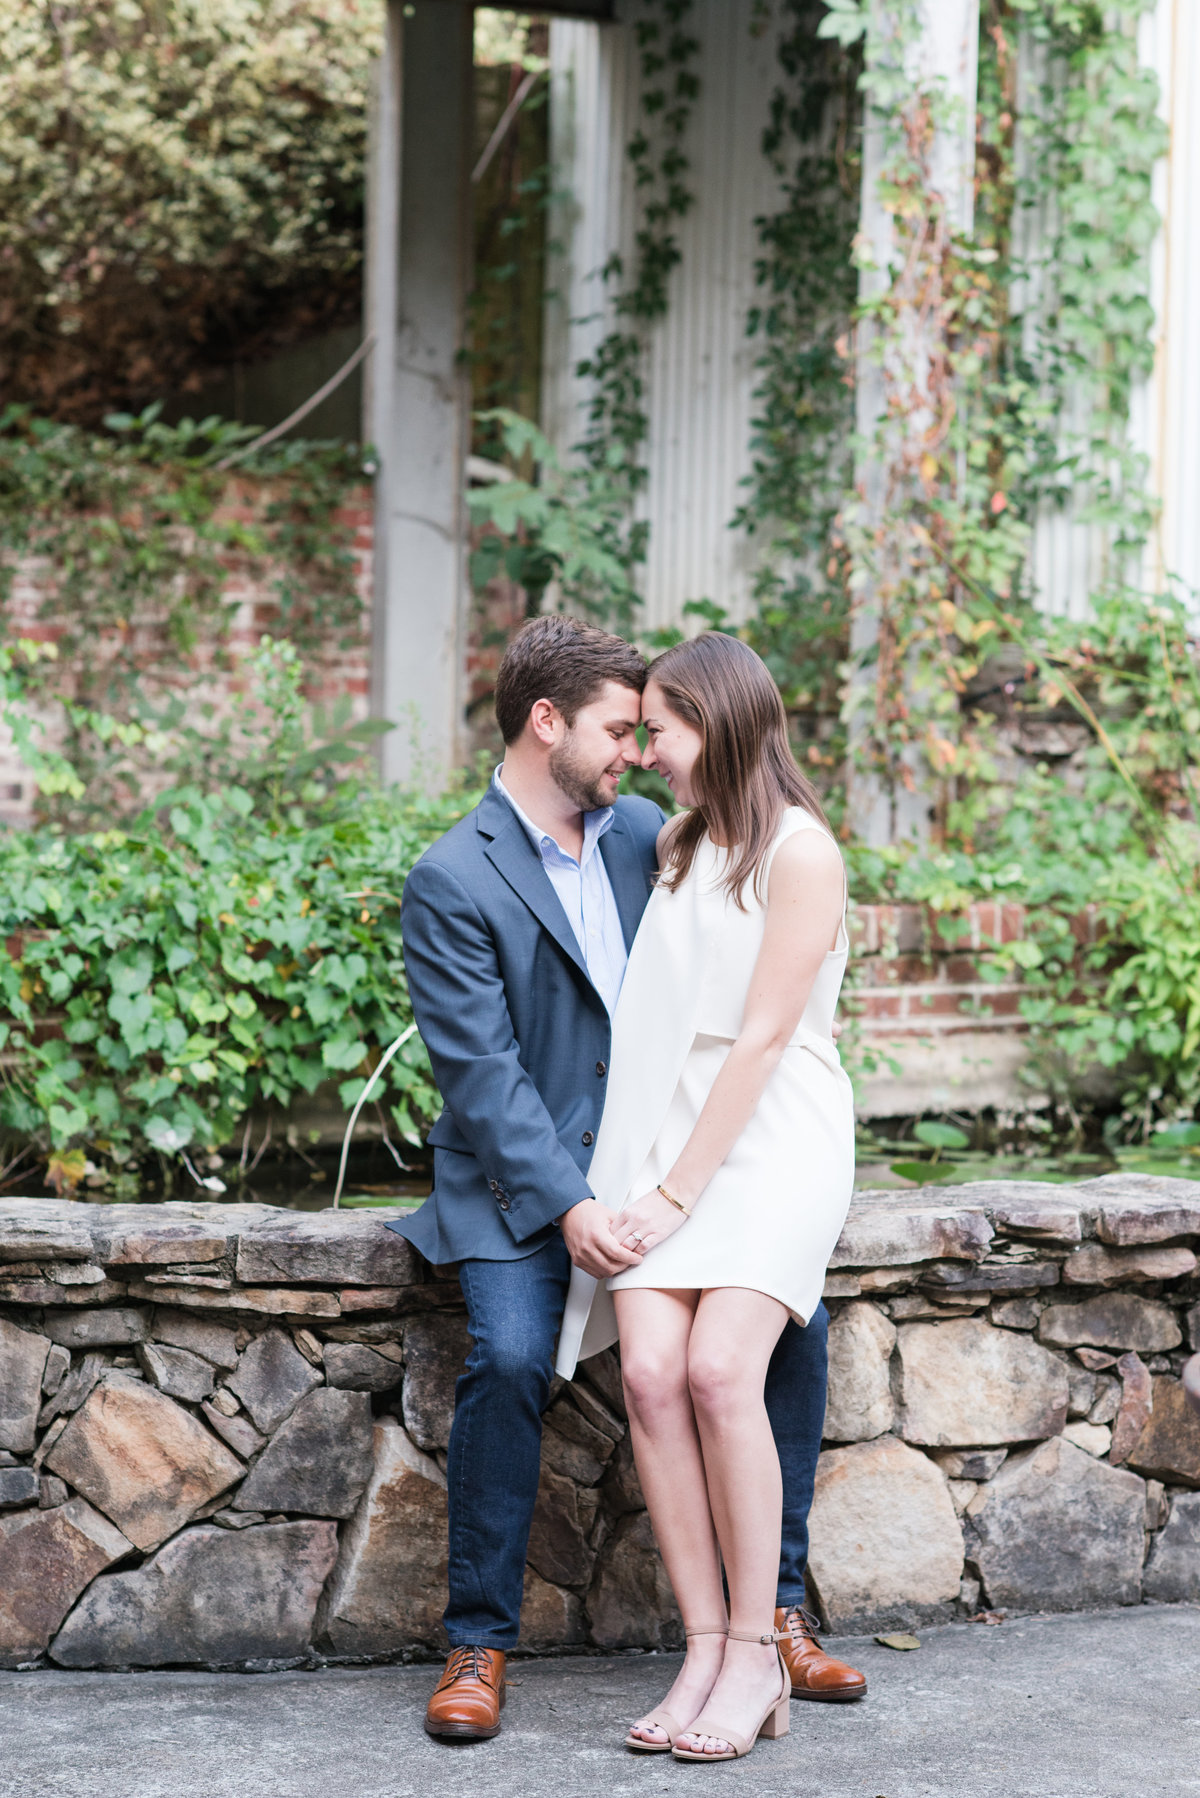 a bride wearing a short white dress sitting on her fiances leg who is wearing a navy suit sitting on a brick wall in front of greenery in Saxapahaw NC